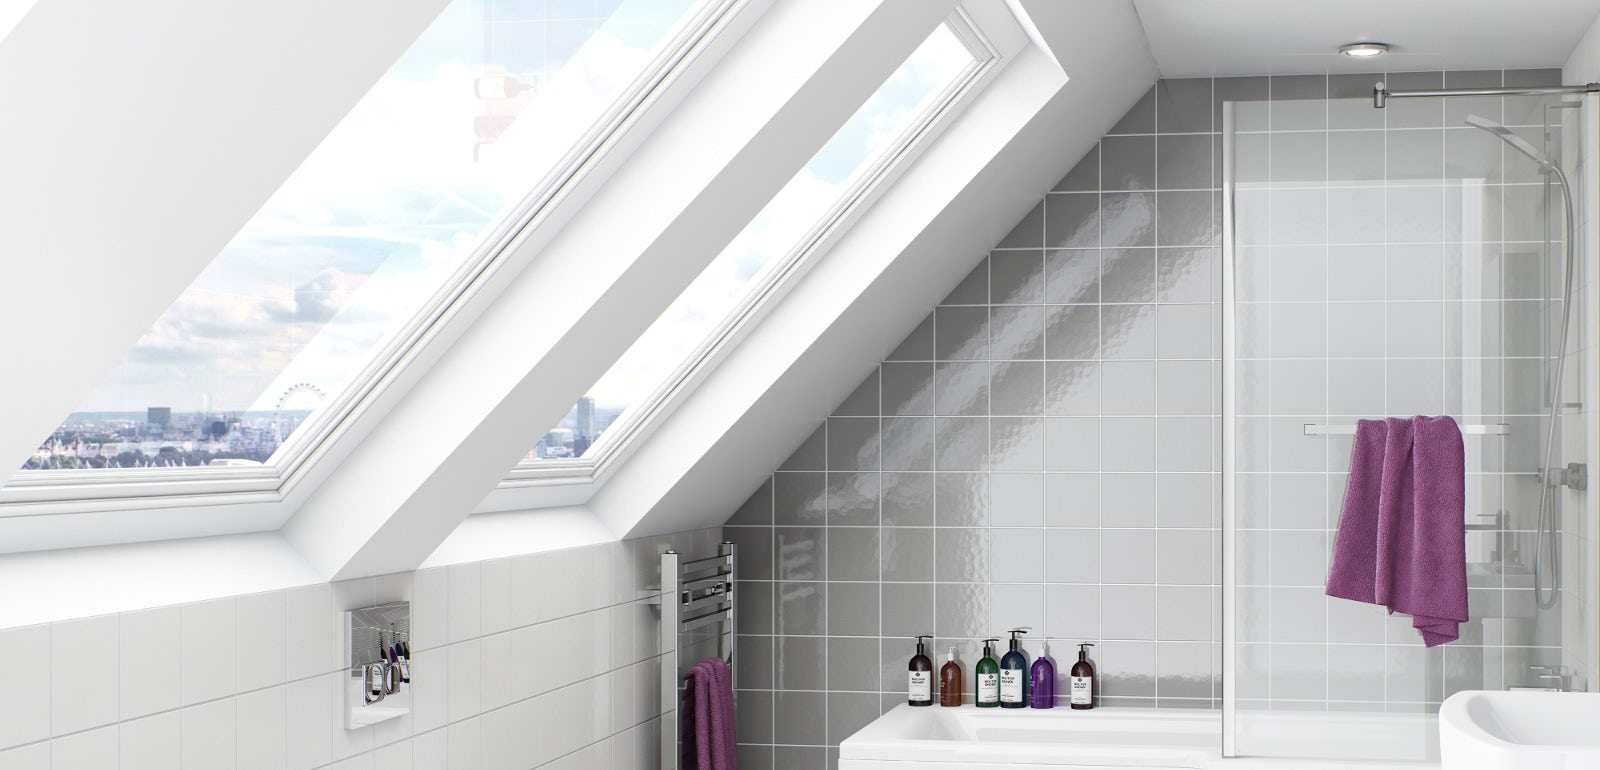 The Boston Square Shower Bath - a real space saving solution